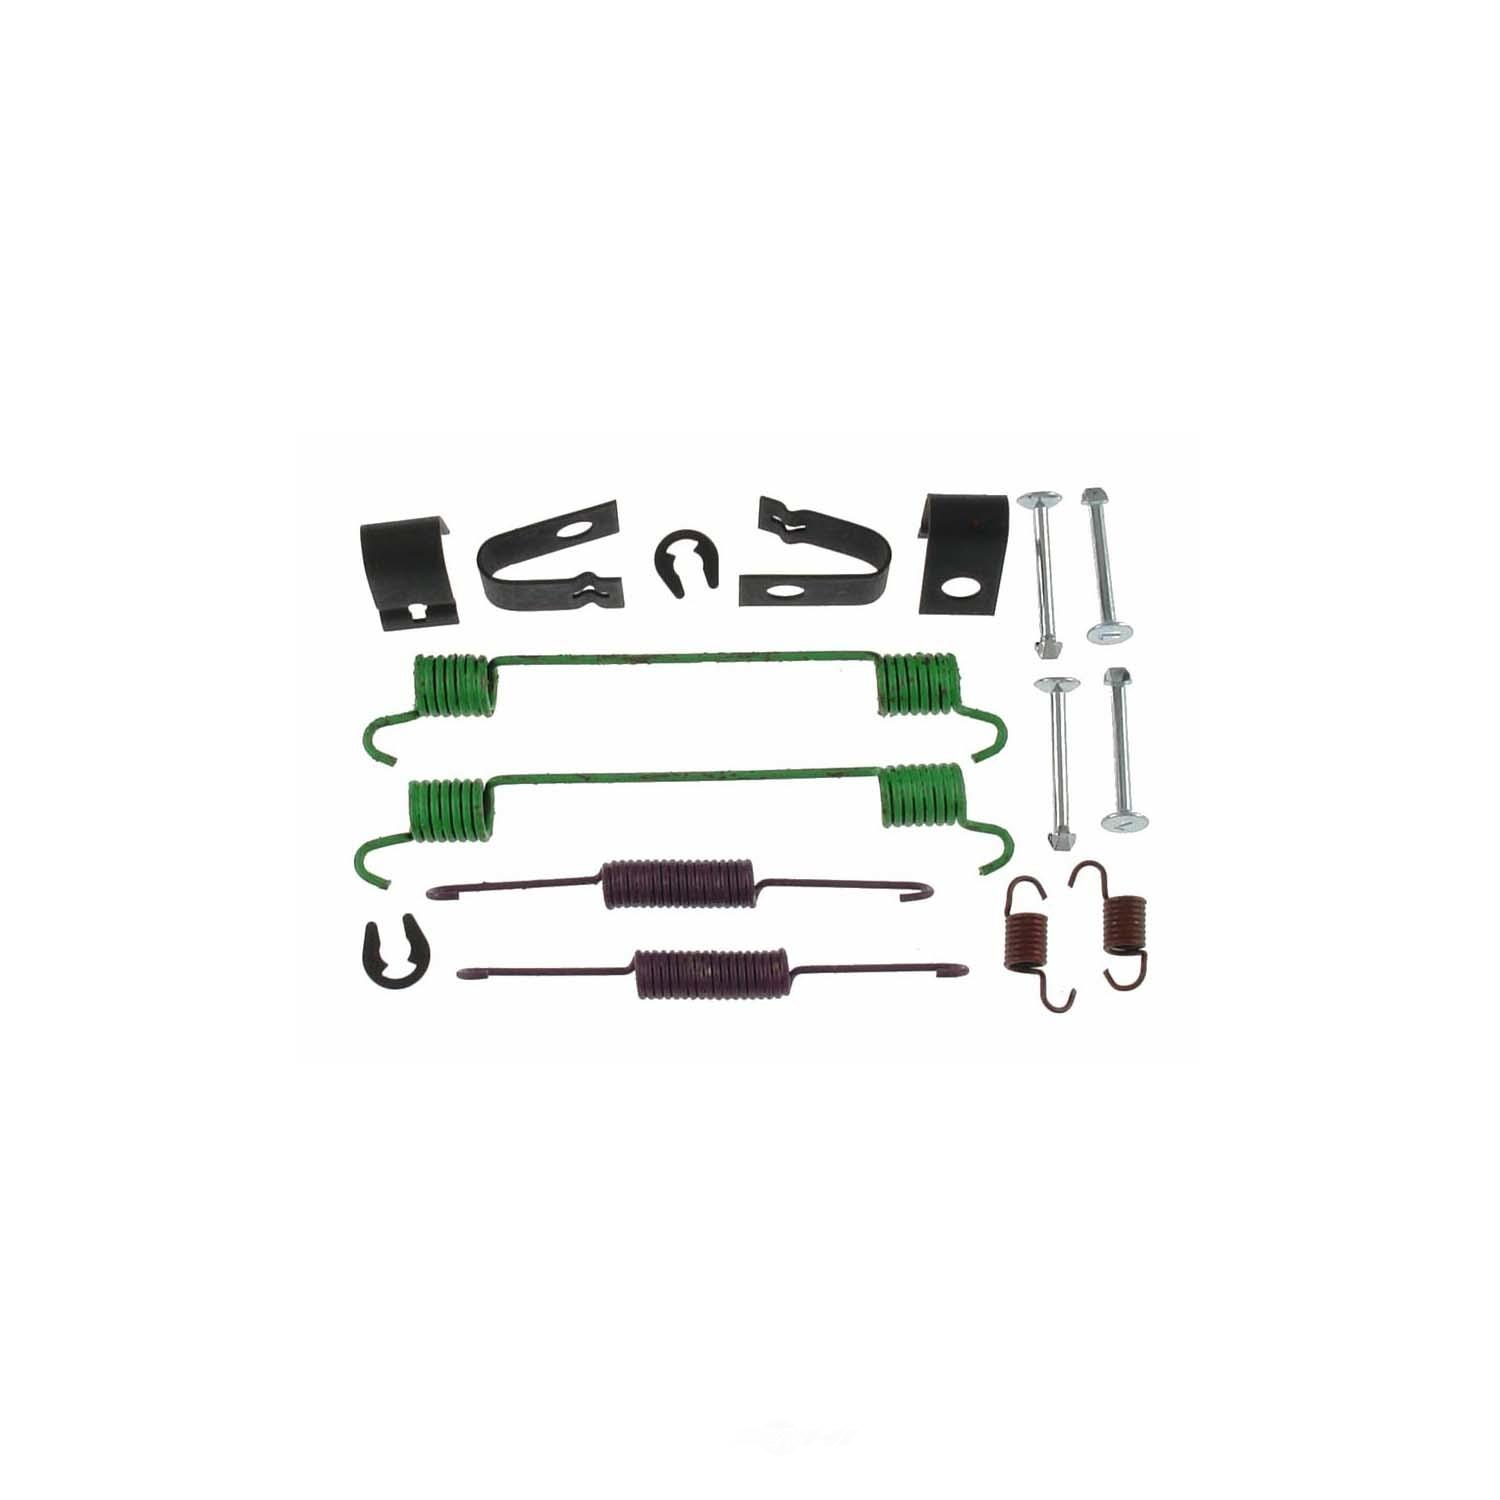 Geo Tracker Drum Brake Hardware Kit From Best Value Auto Parts